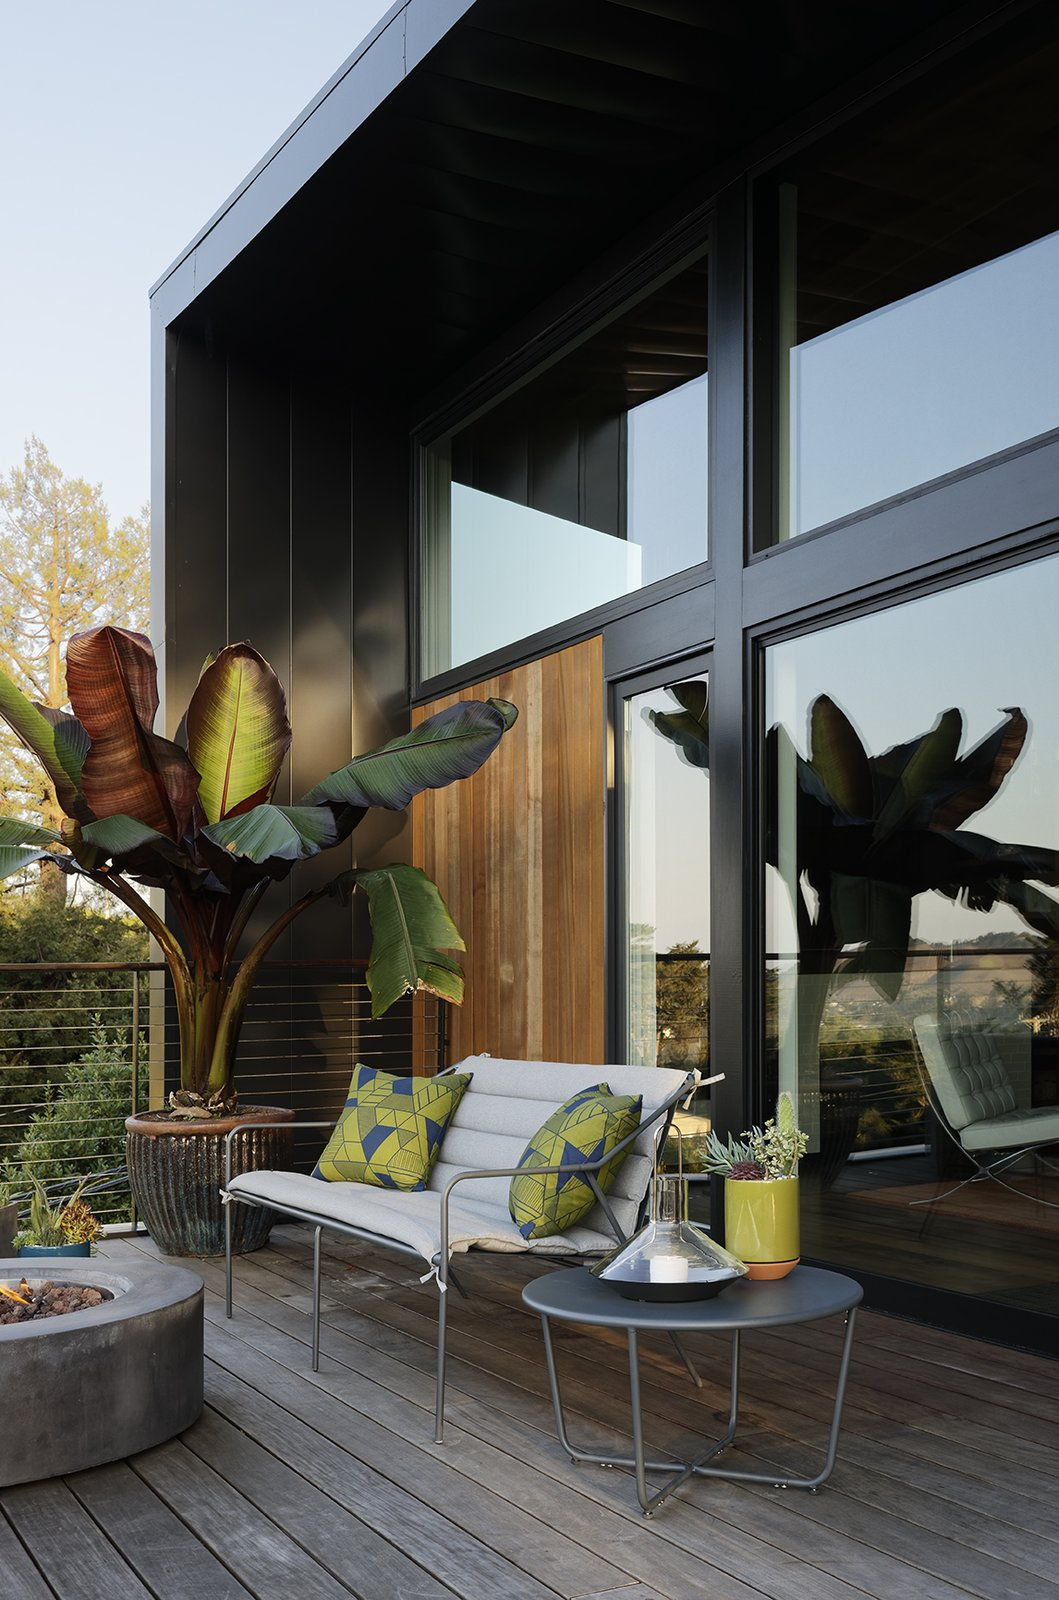 The barware, candle holders, dining set, lantern, terracotta planters, outdoor seating, and side table are all from the Modern by Dwell Magazine collection for Target. The fire pit is from Restoration Hardware. Tagged: Outdoor and Wood Patio, Porch, Deck.  Photo 4 of 15 in Moving Mountains